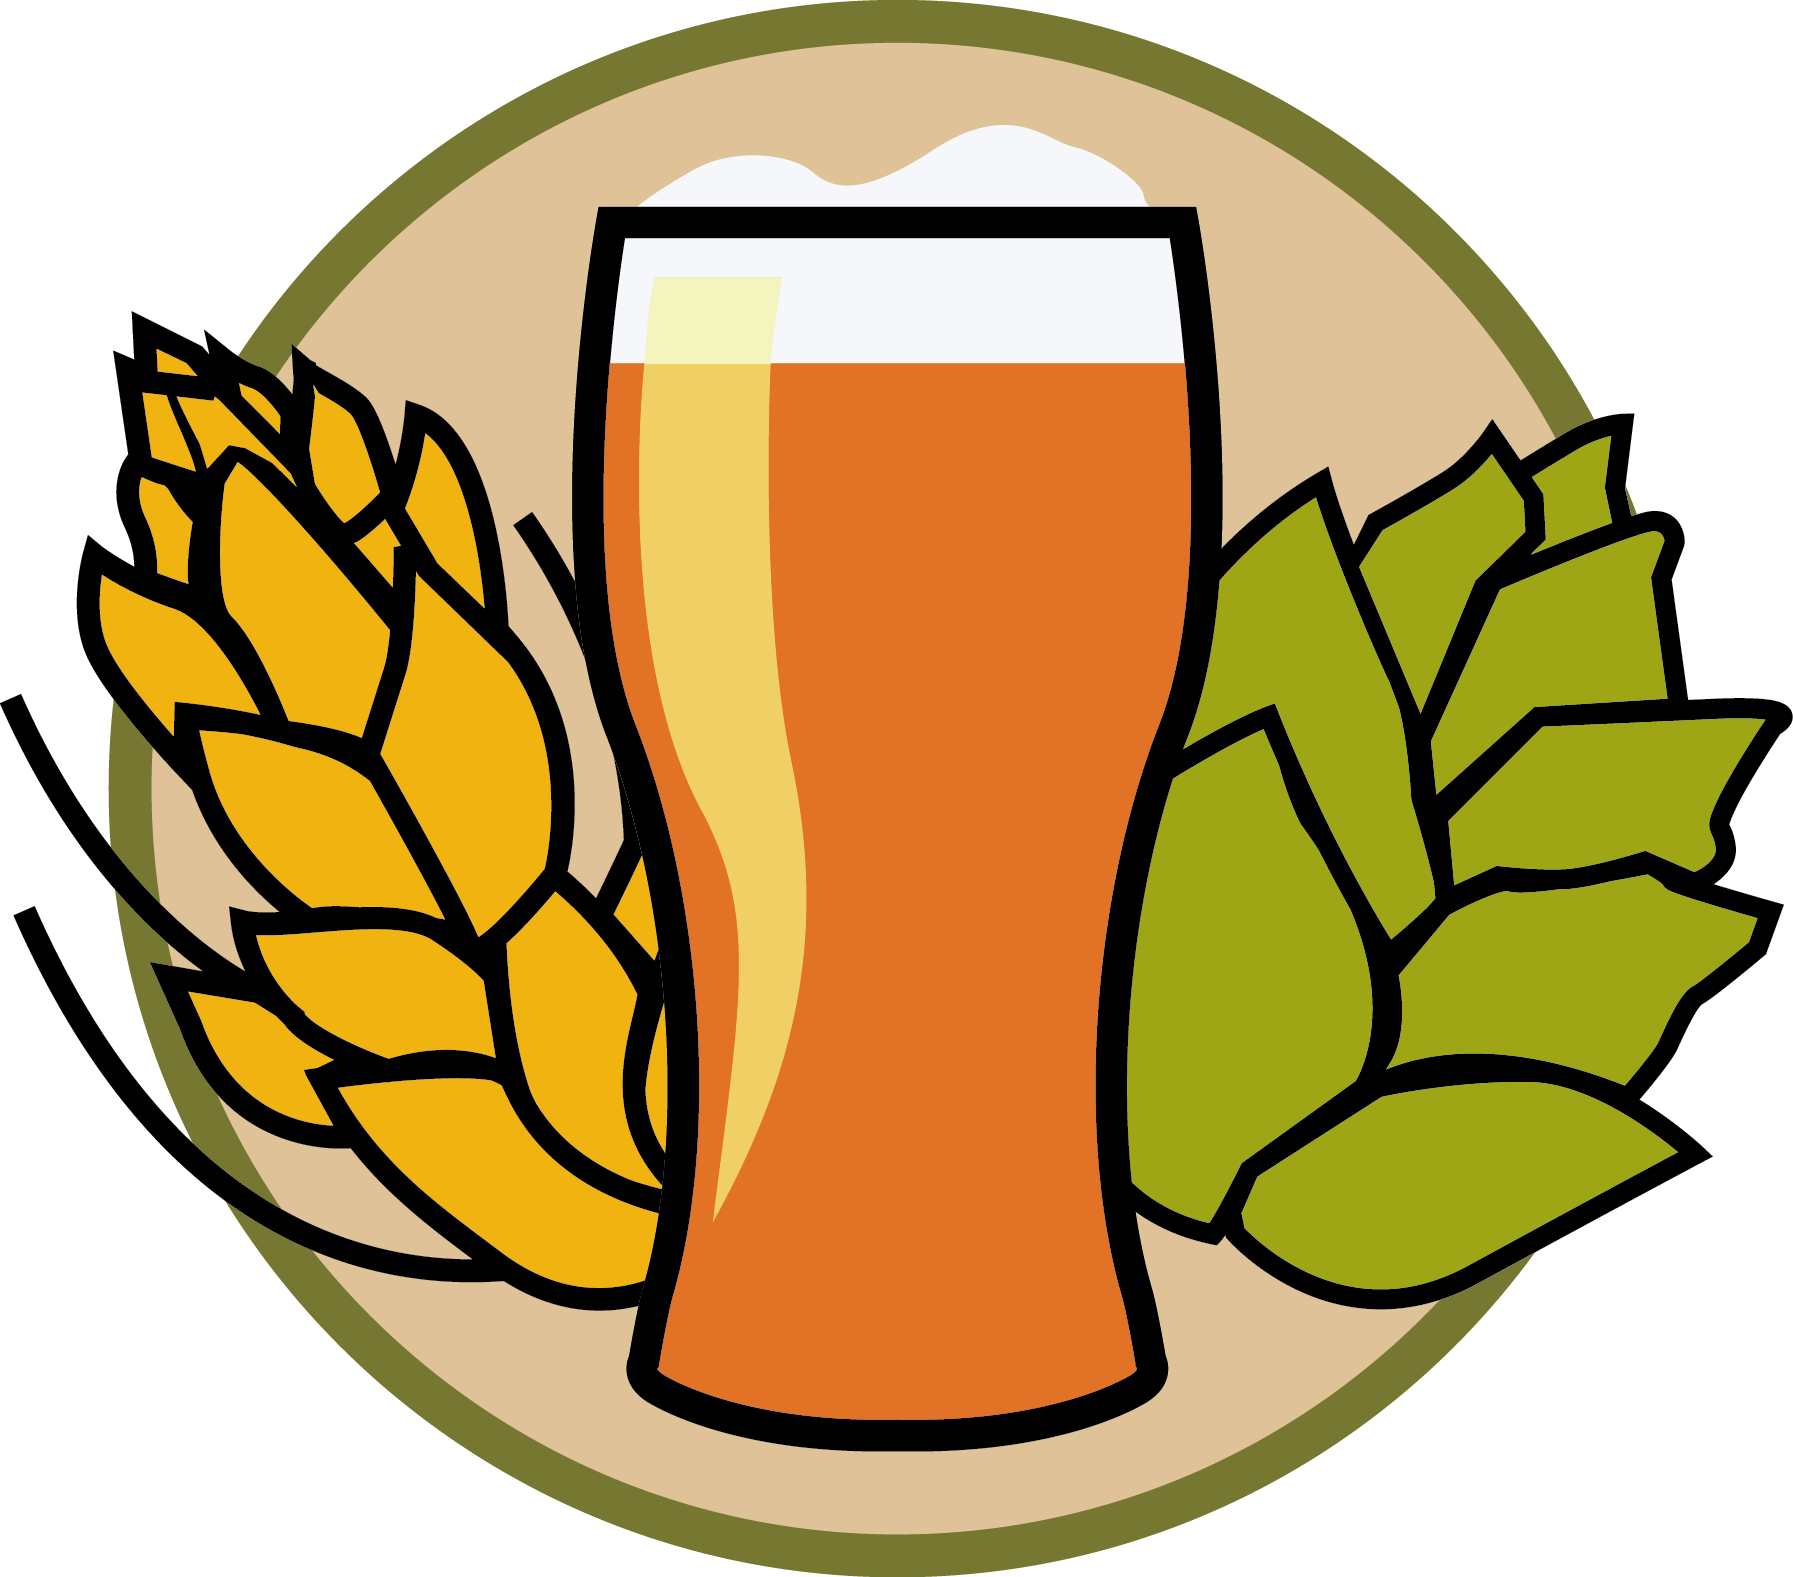 Hops clipart beer logo. Home oregon and brewing